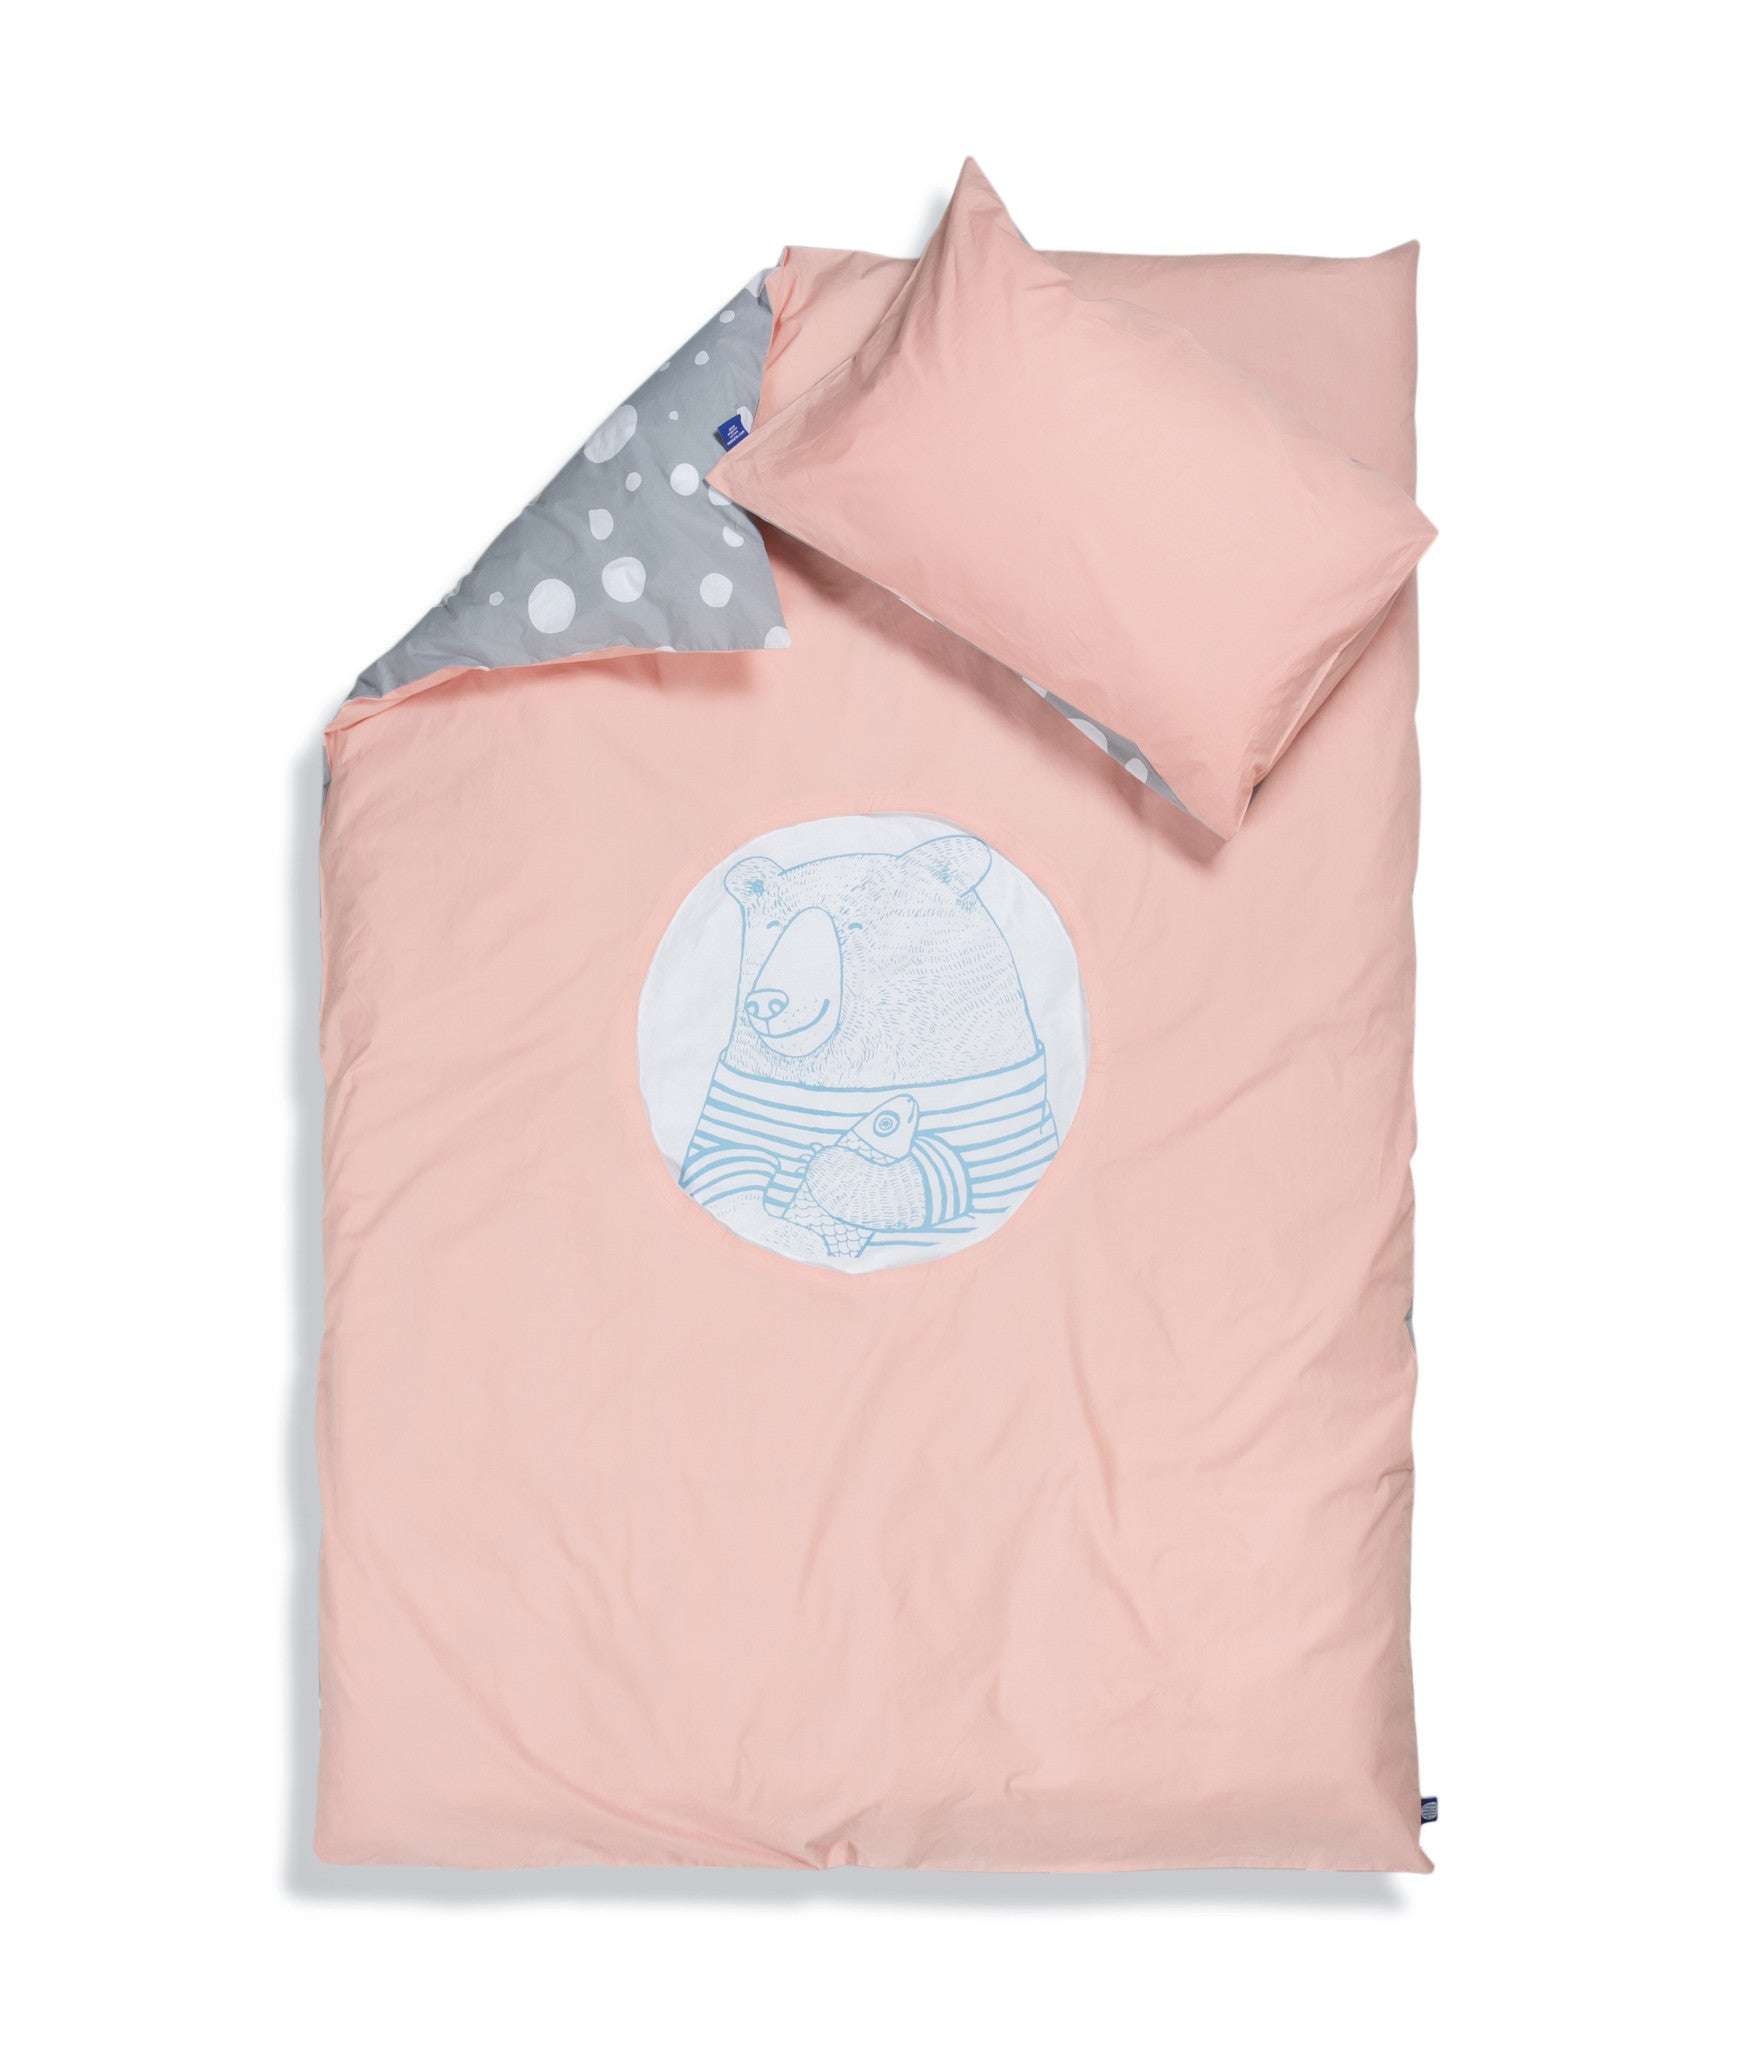 Organic cotton single bed set. Kids bedding. Pink pillow case and pink duvet cover with bear. Dotted pattern bed linen. Customised bedding.